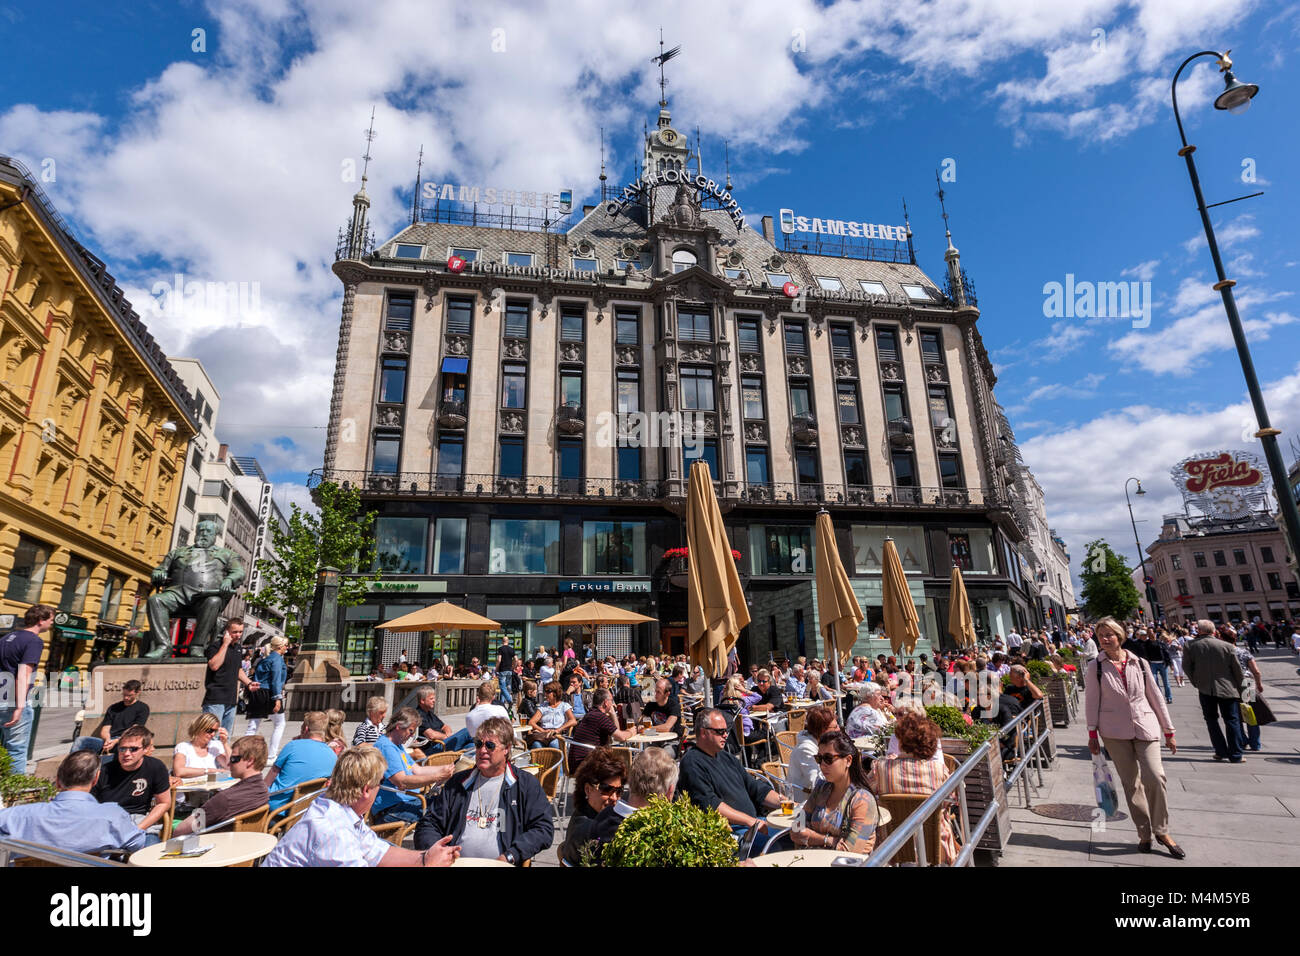 Sunny summer day with terrace full of people in front of Olav Thon Gruppen house, Karl Johans gate, Oslo, Norway - Stock Image